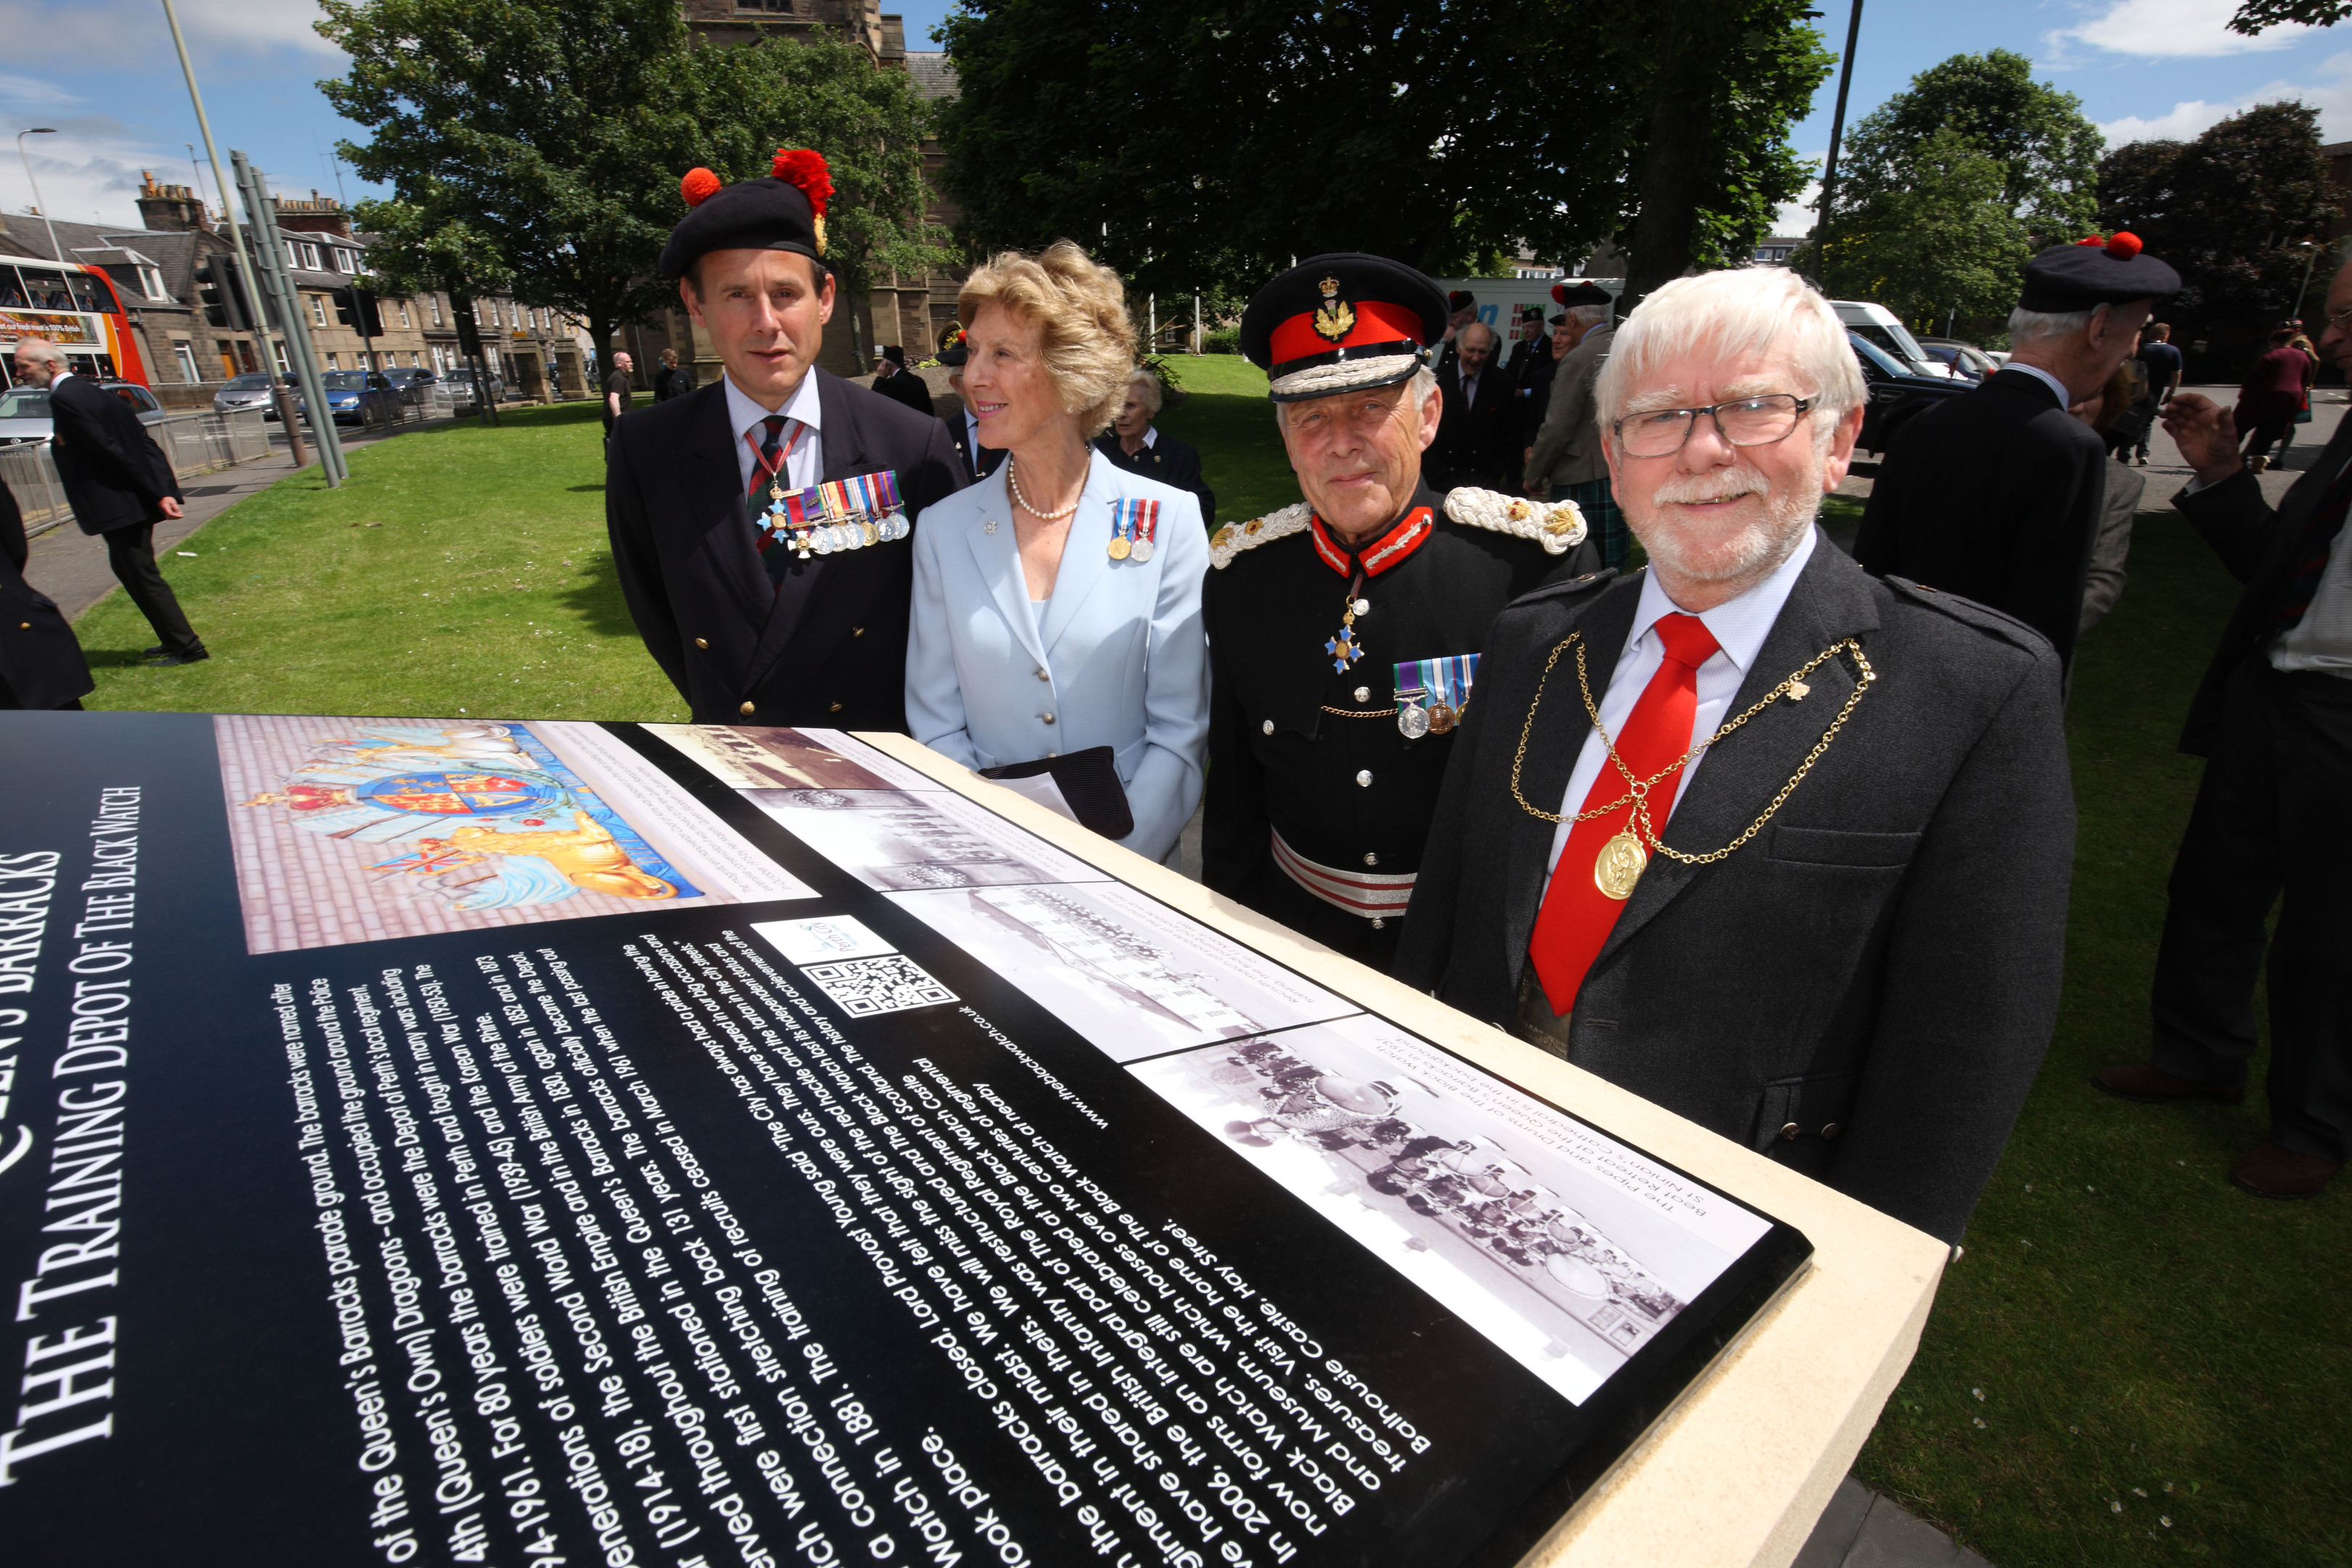 Lieutenant General Cowan, Georgiana Osborne, Lord Lieutenant of Angus, Brigadier Mel Jamieson, Lord Lieutenant of Perthshire  and Perth Provost Dennis Melloy look at the new  plaque commemorating the Queen's Barracks.